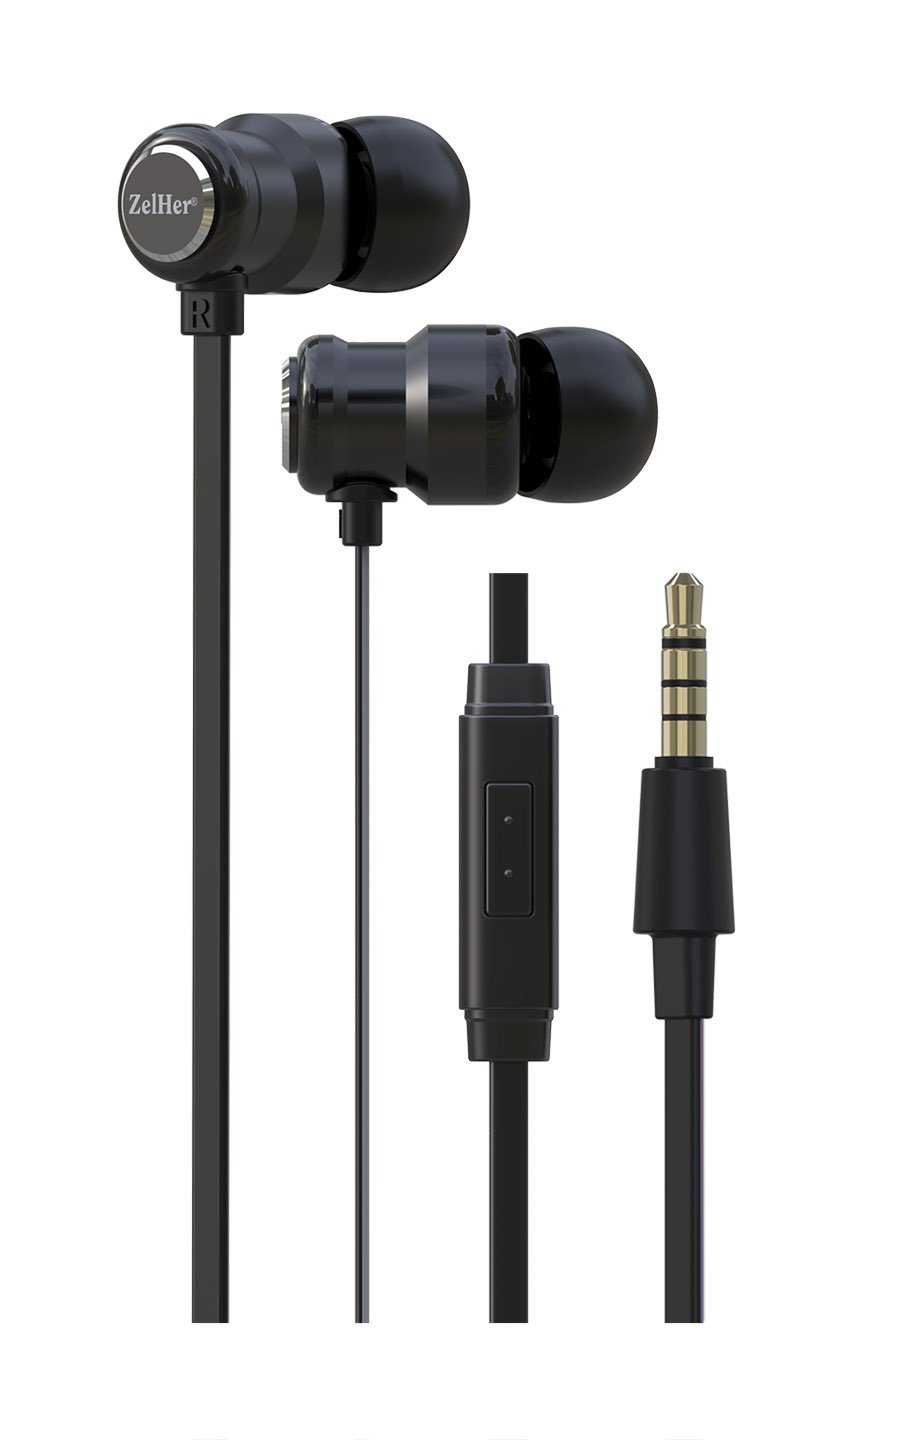 ZelHer MX-10 in-Ear Headphones with Mic Wired in-Ear Earbuds with Inline Control and 10mm Dual Chamber Drivers for Superior Sound Quality - Stylish, Tangle-Free Cables (Black) by ZelHer